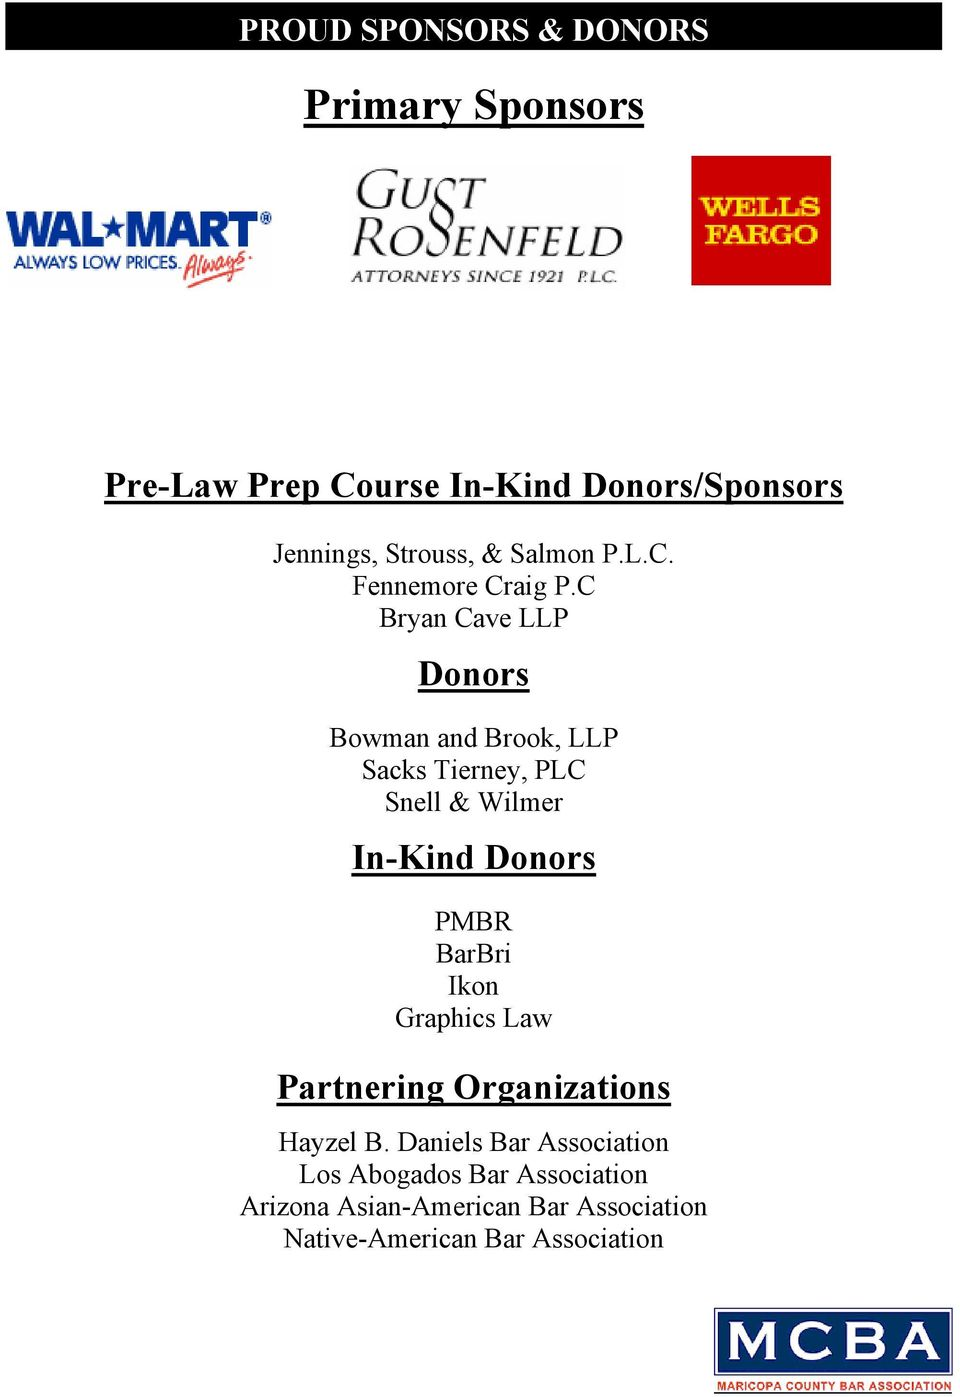 C Bryan Cave LLP Donors Bowman and Brook, LLP Sacks Tierney, PLC Snell & Wilmer In-Kind Donors PMBR